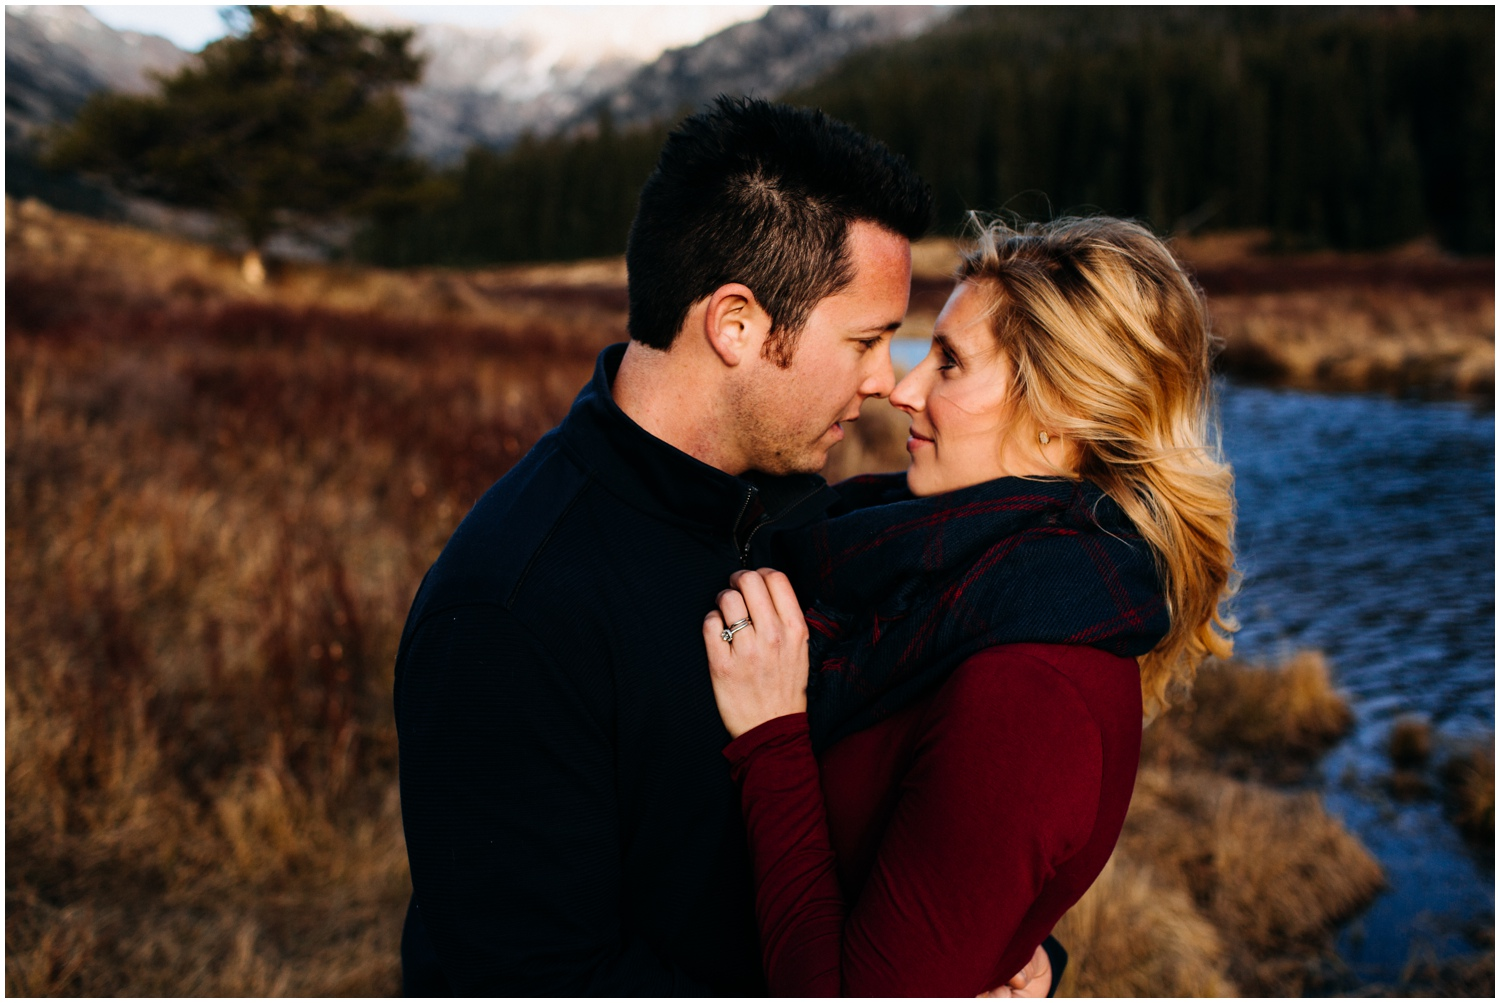 adventure_photo_engagement_session_vail_colorado_taylor_powers__0043.jpg